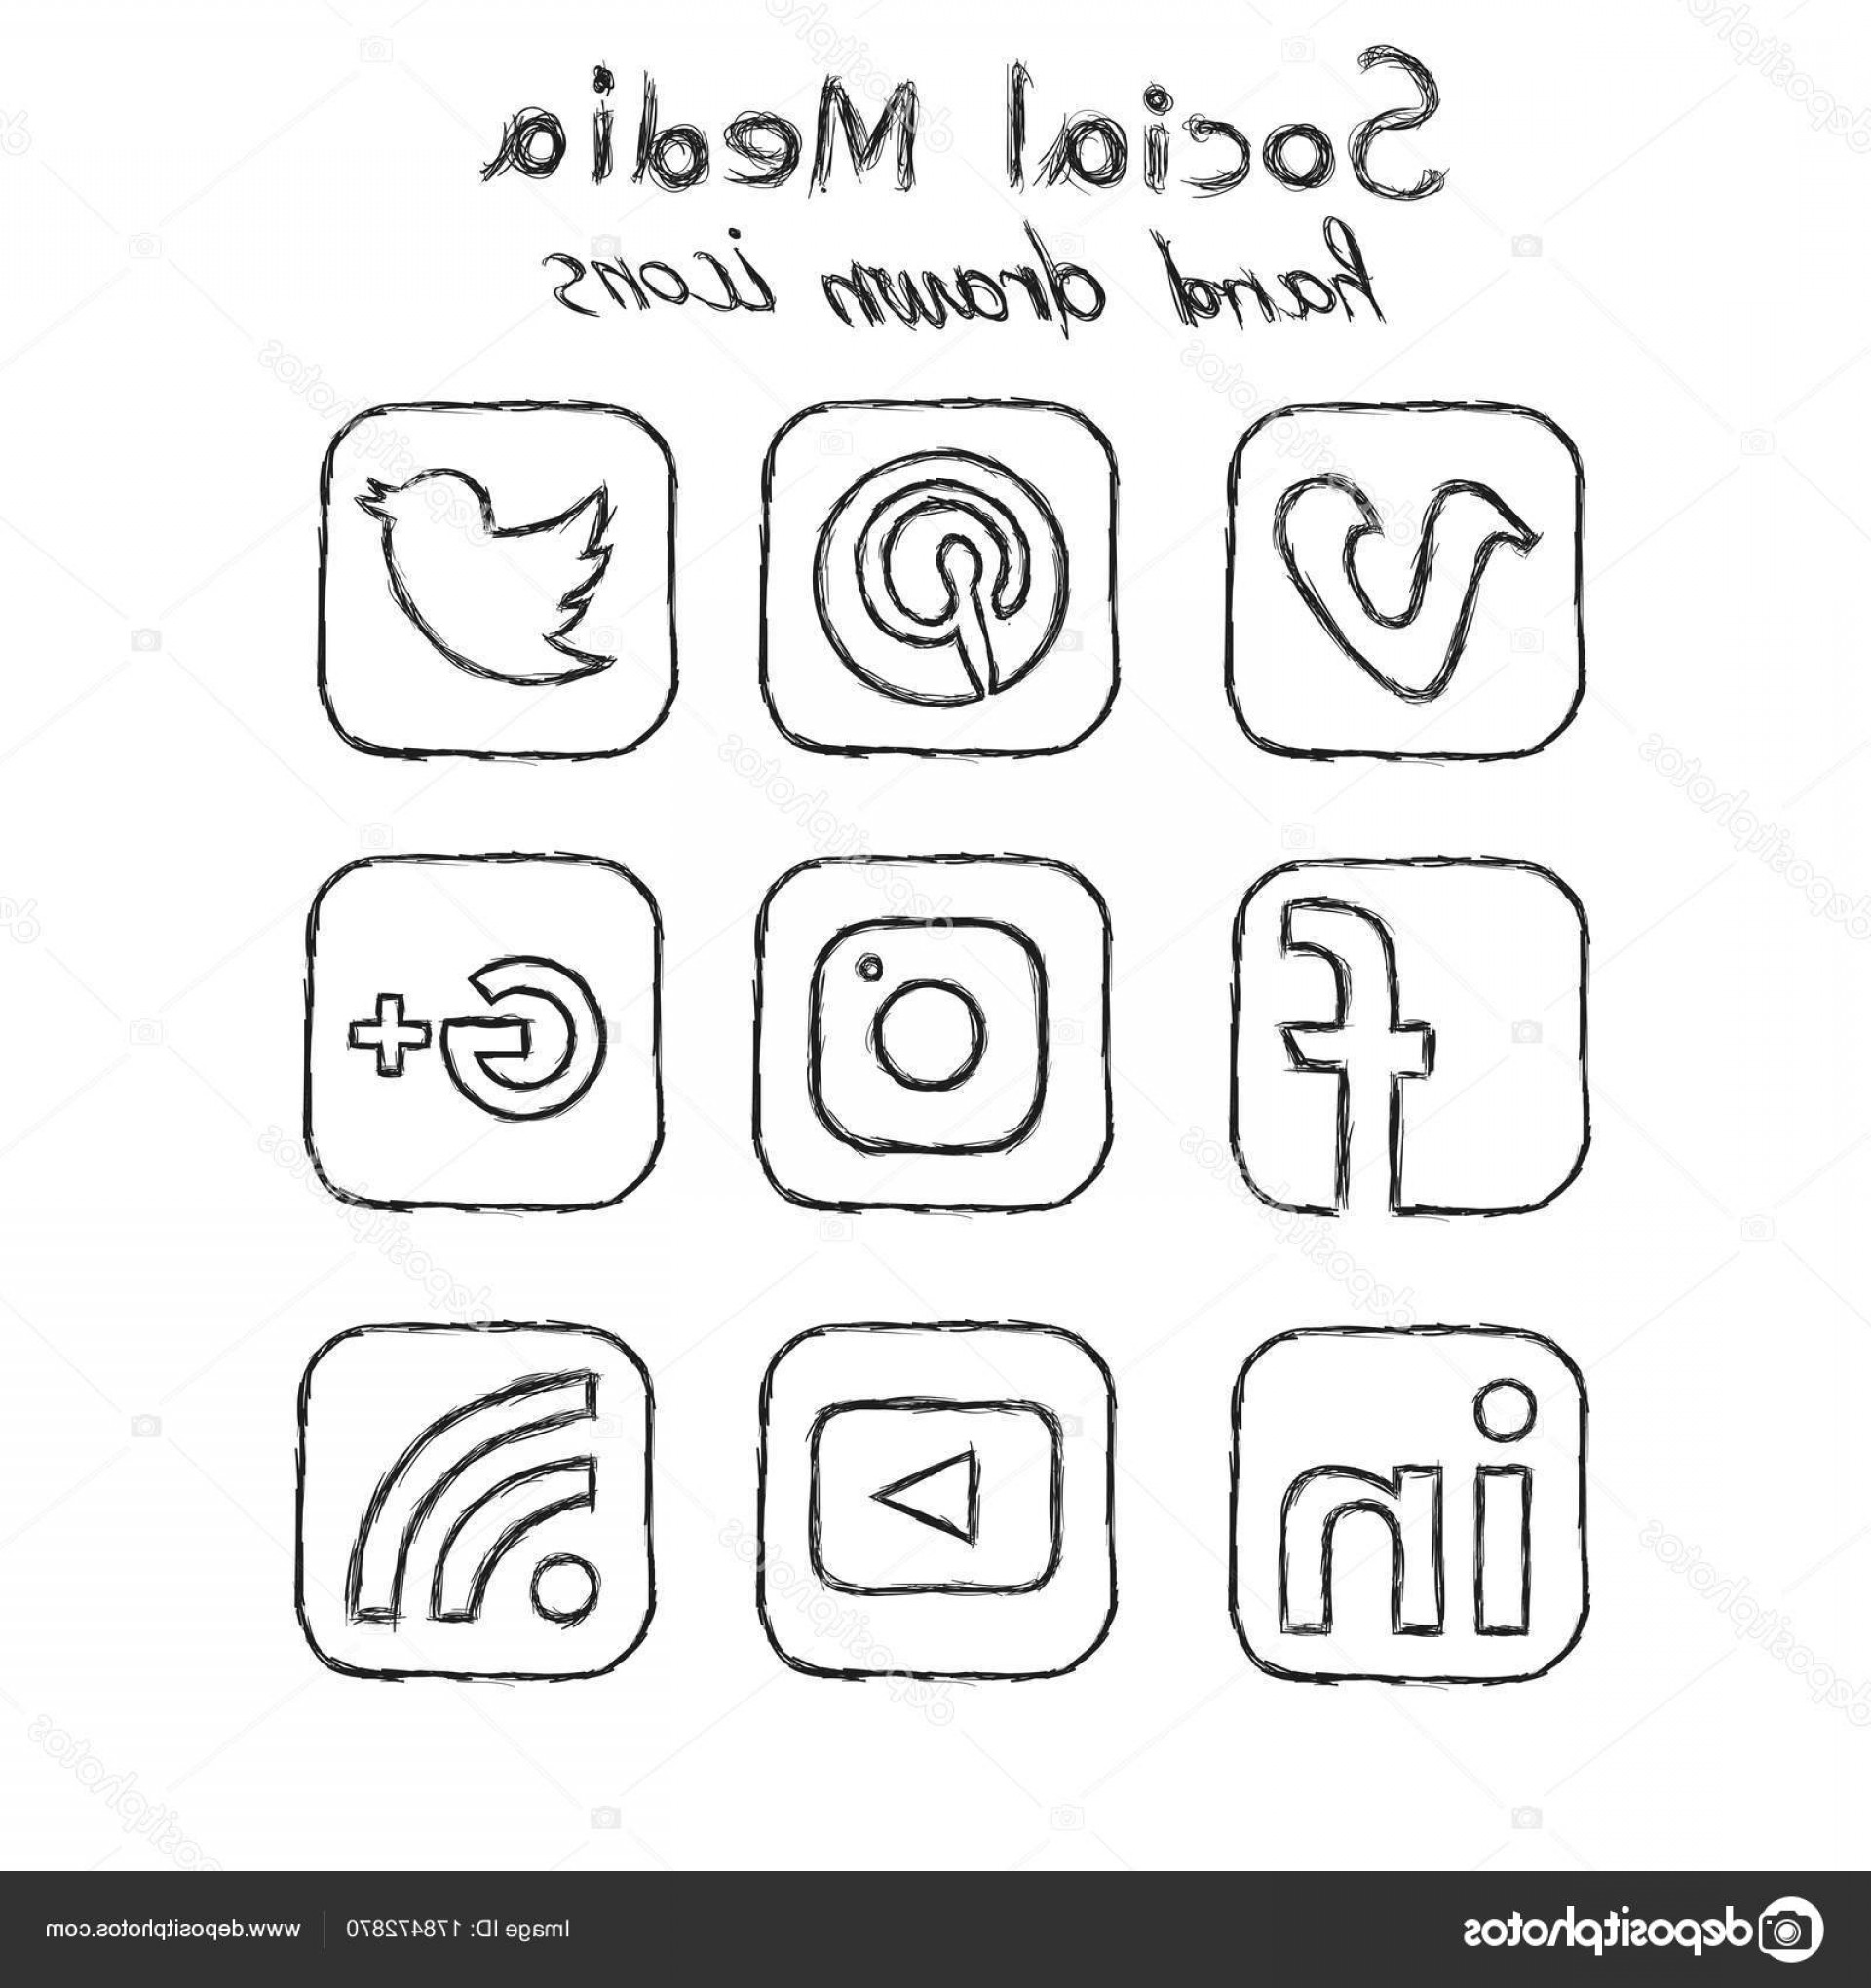 Pencil Icon Vectors Social Media: Stock Illustration Social Media Hand Drawn Icons